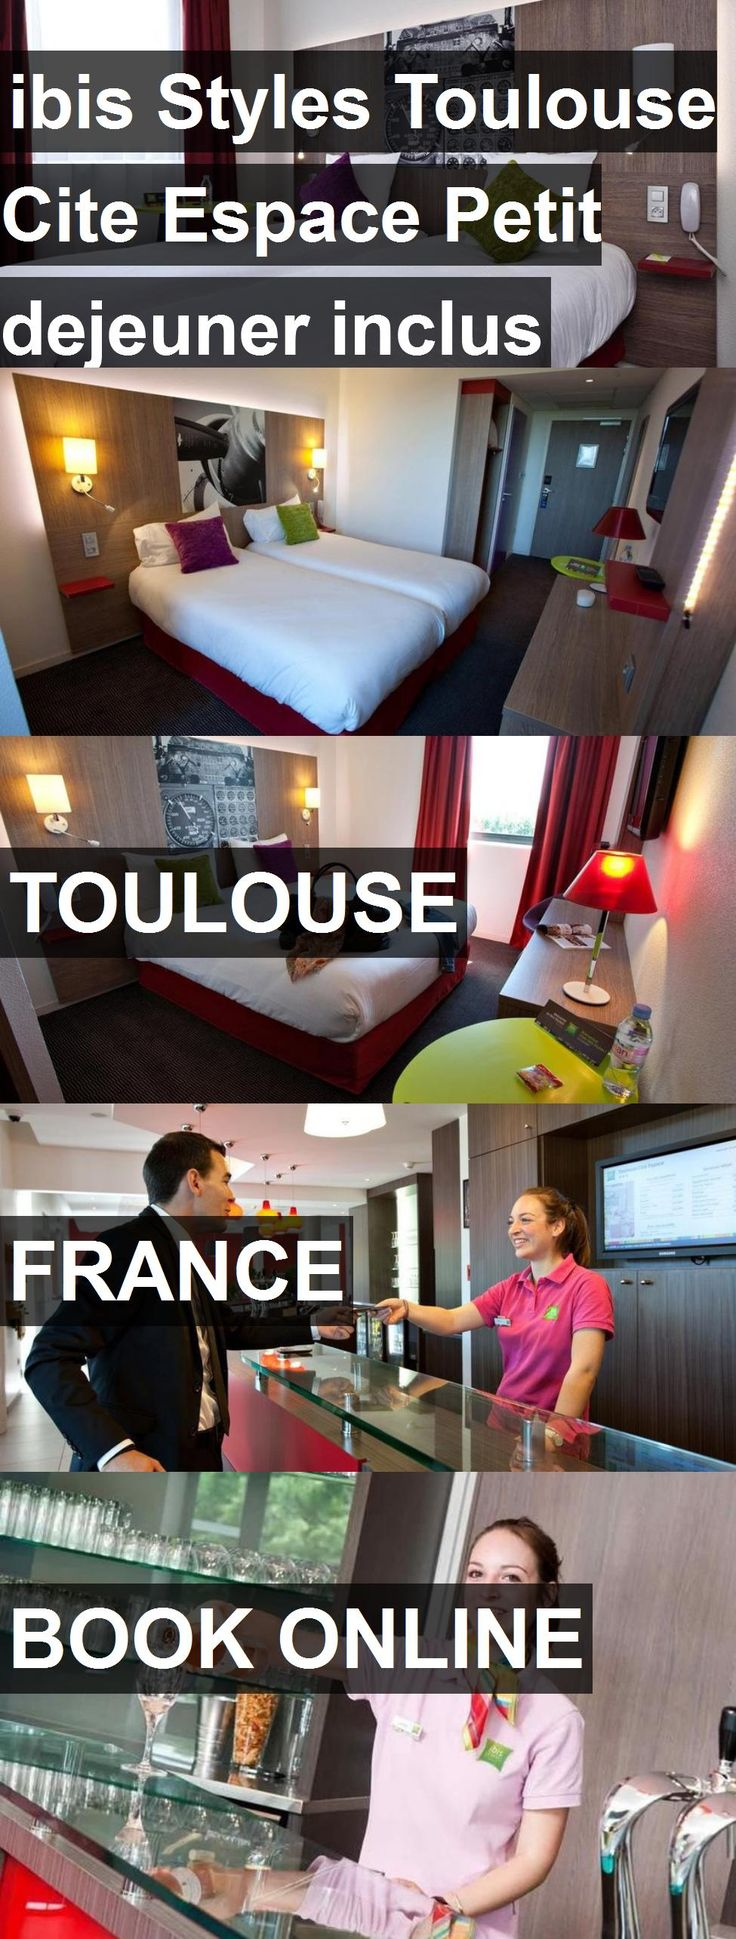 Hotel ibis Styles Toulouse Cite Espace Petit dejeuner inclus in Toulouse, France. For more information, photos, reviews and best prices please follow the link. #France #Toulouse #travel #vacation #hotel